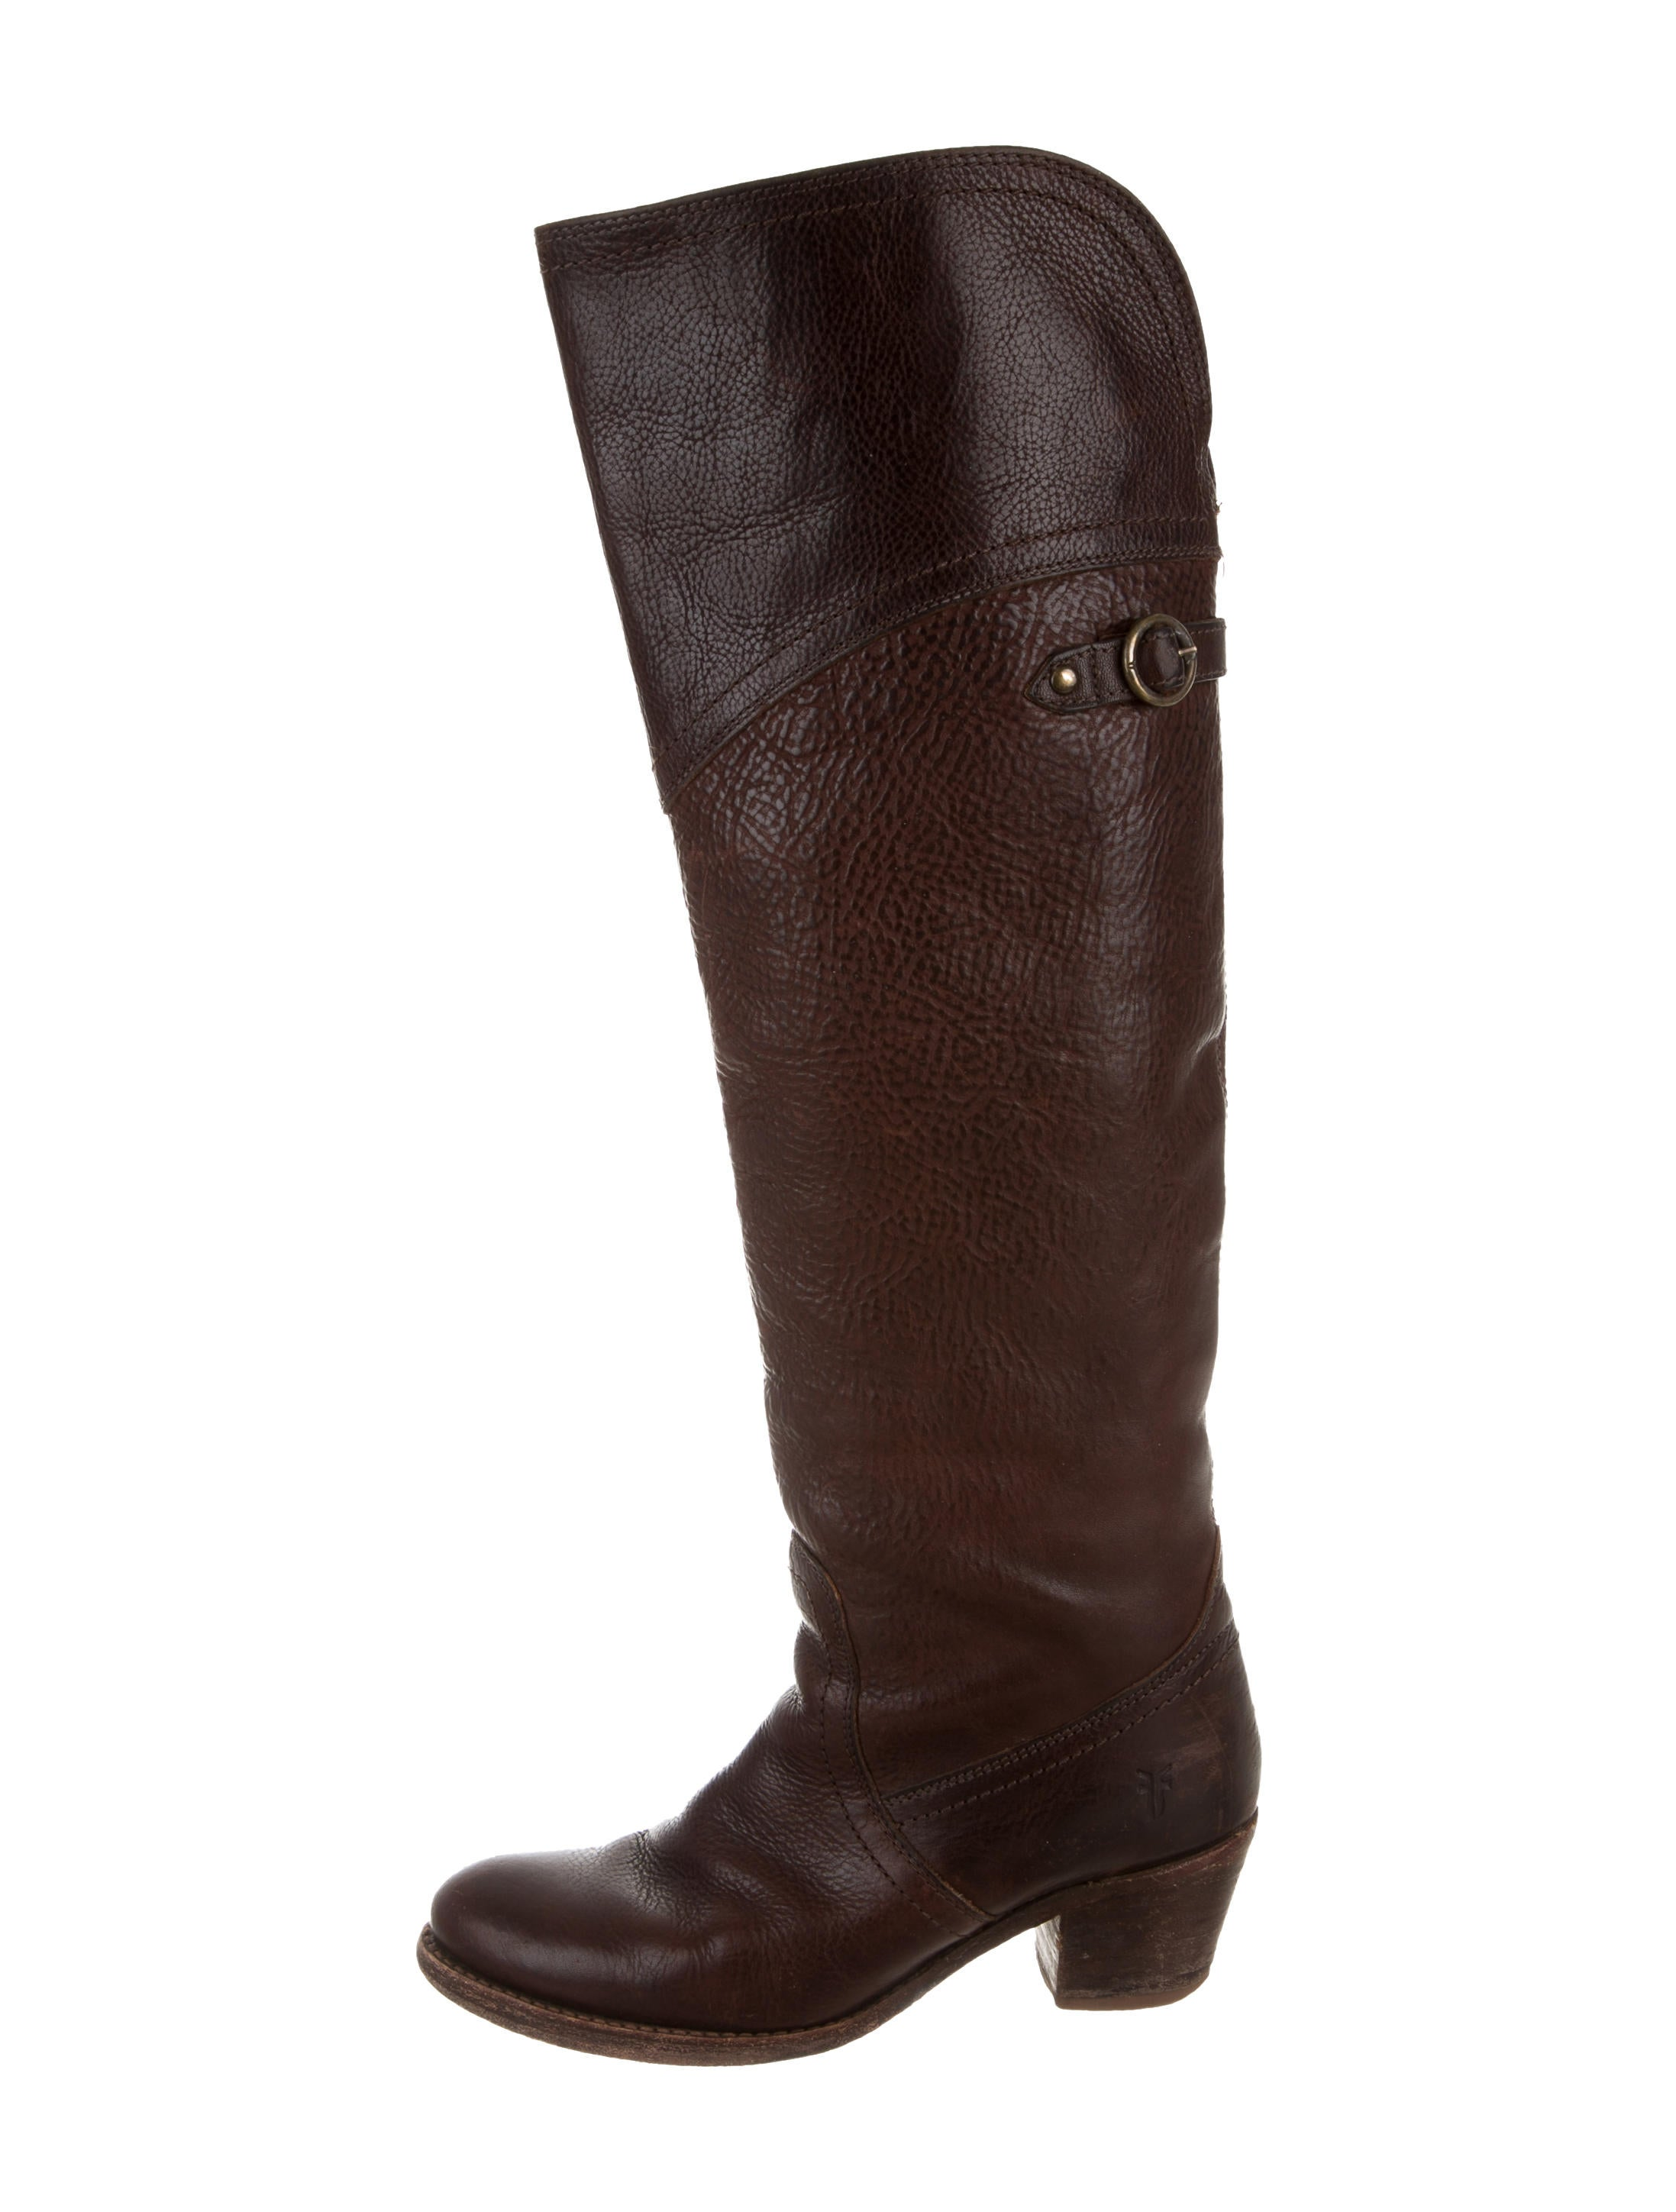 frye leather knee high boots shoes wf821063 the realreal